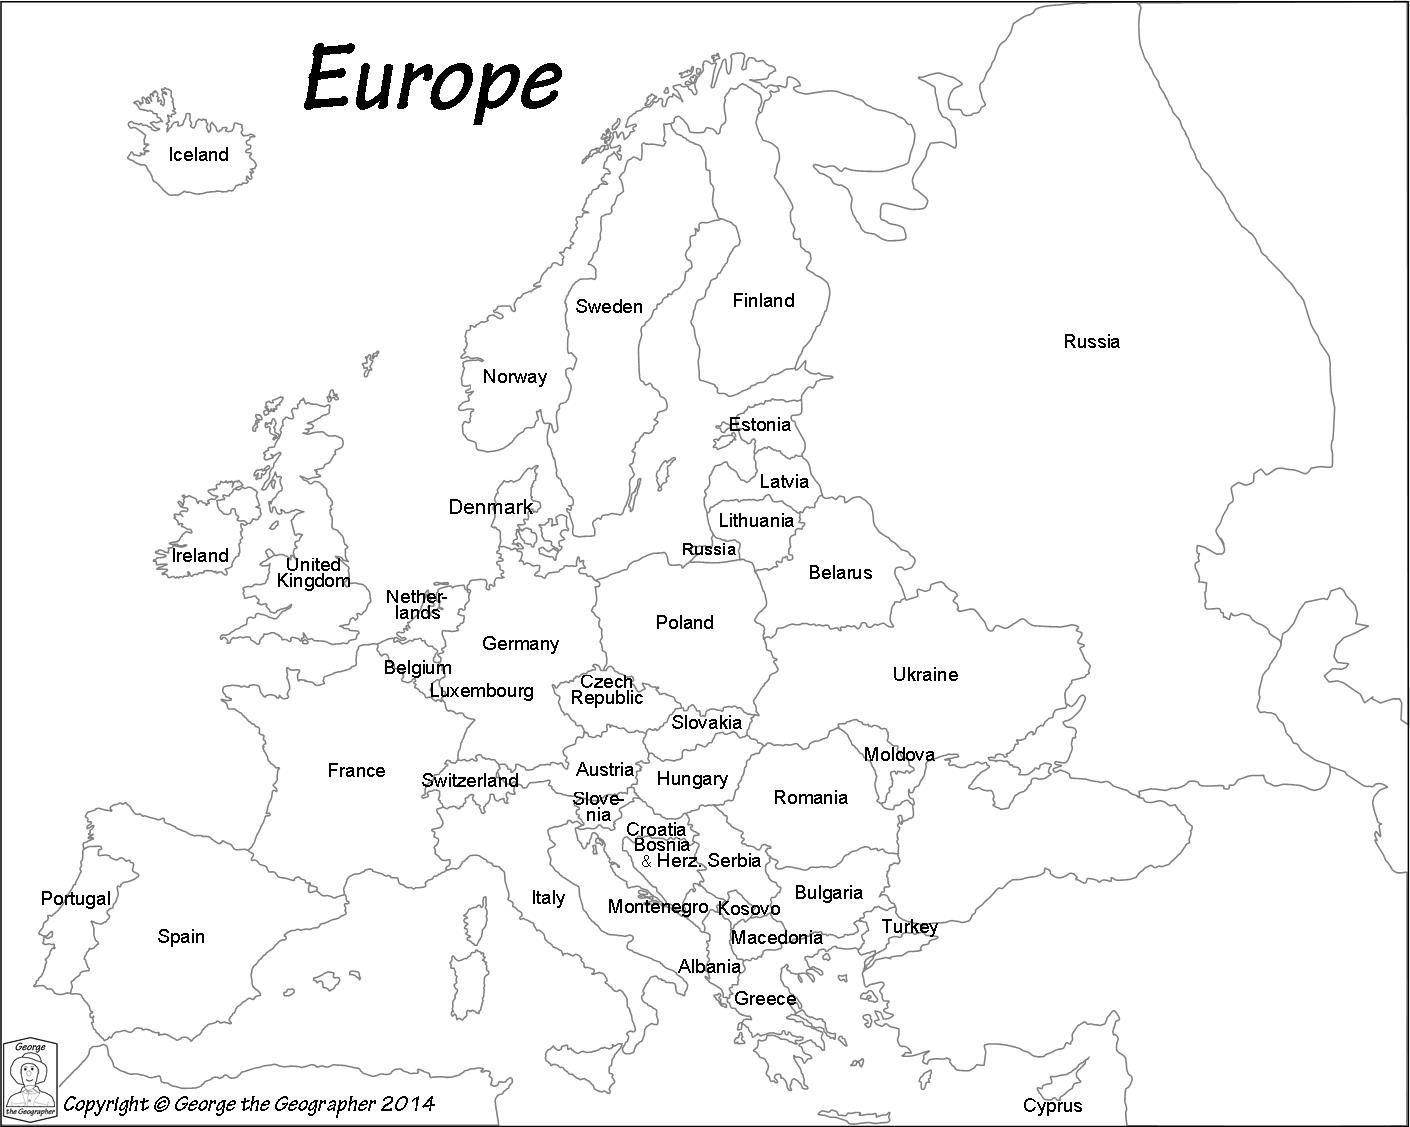 Fdbdfdccaebdc Large Map Of Black And White Europe Map